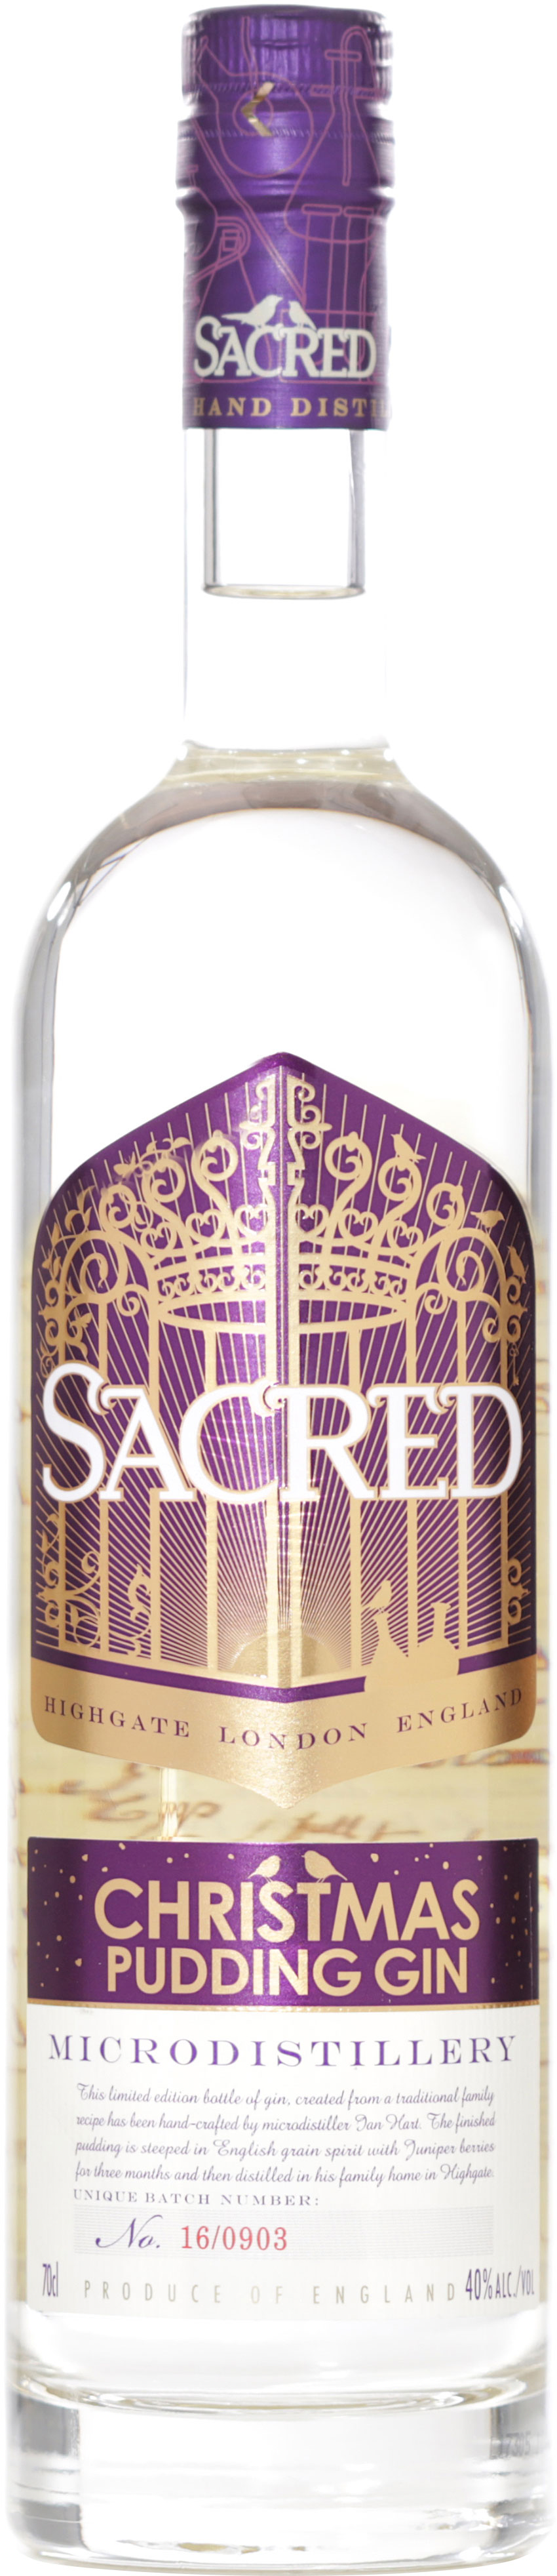 Sacred - Christmas Pudding Gin 70cl Bottle